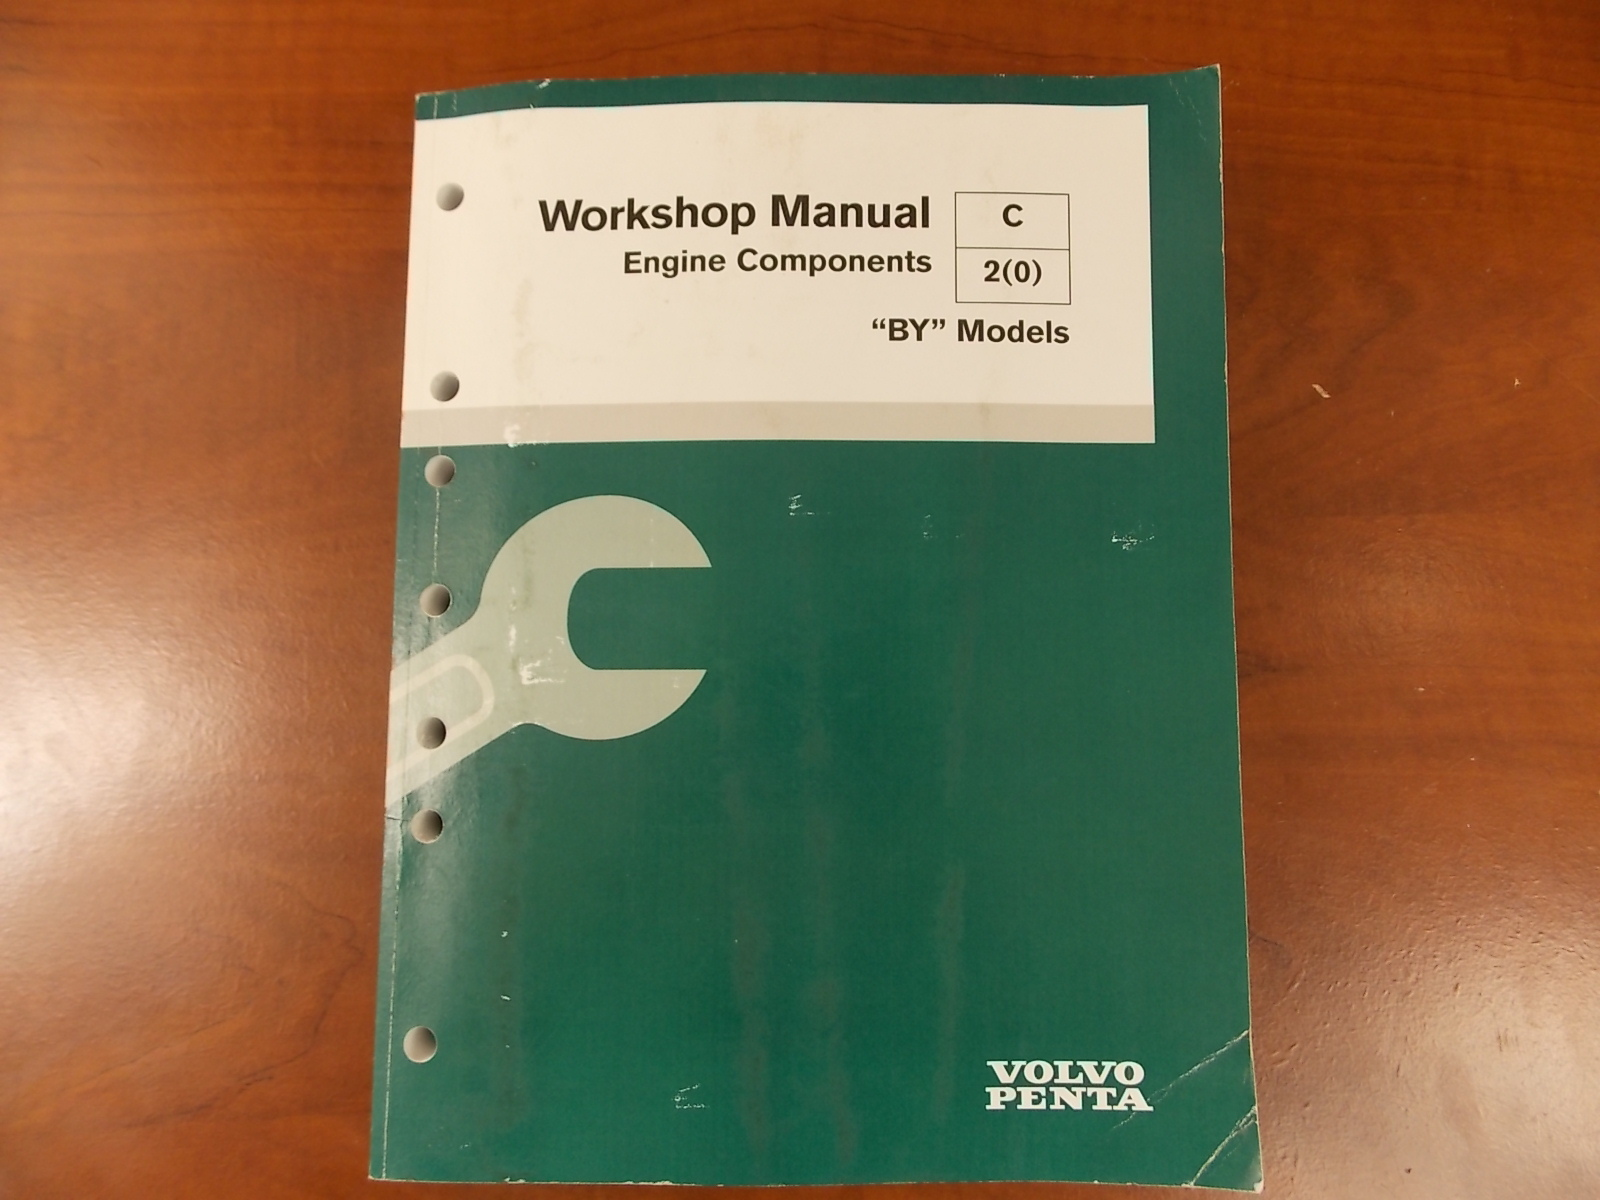 used 1998 volvo penta workshop manual engine components by models rh southcentraloutboards com volvo penta workshop manual for 2030 engines volvo penta workshop manual pdf genv